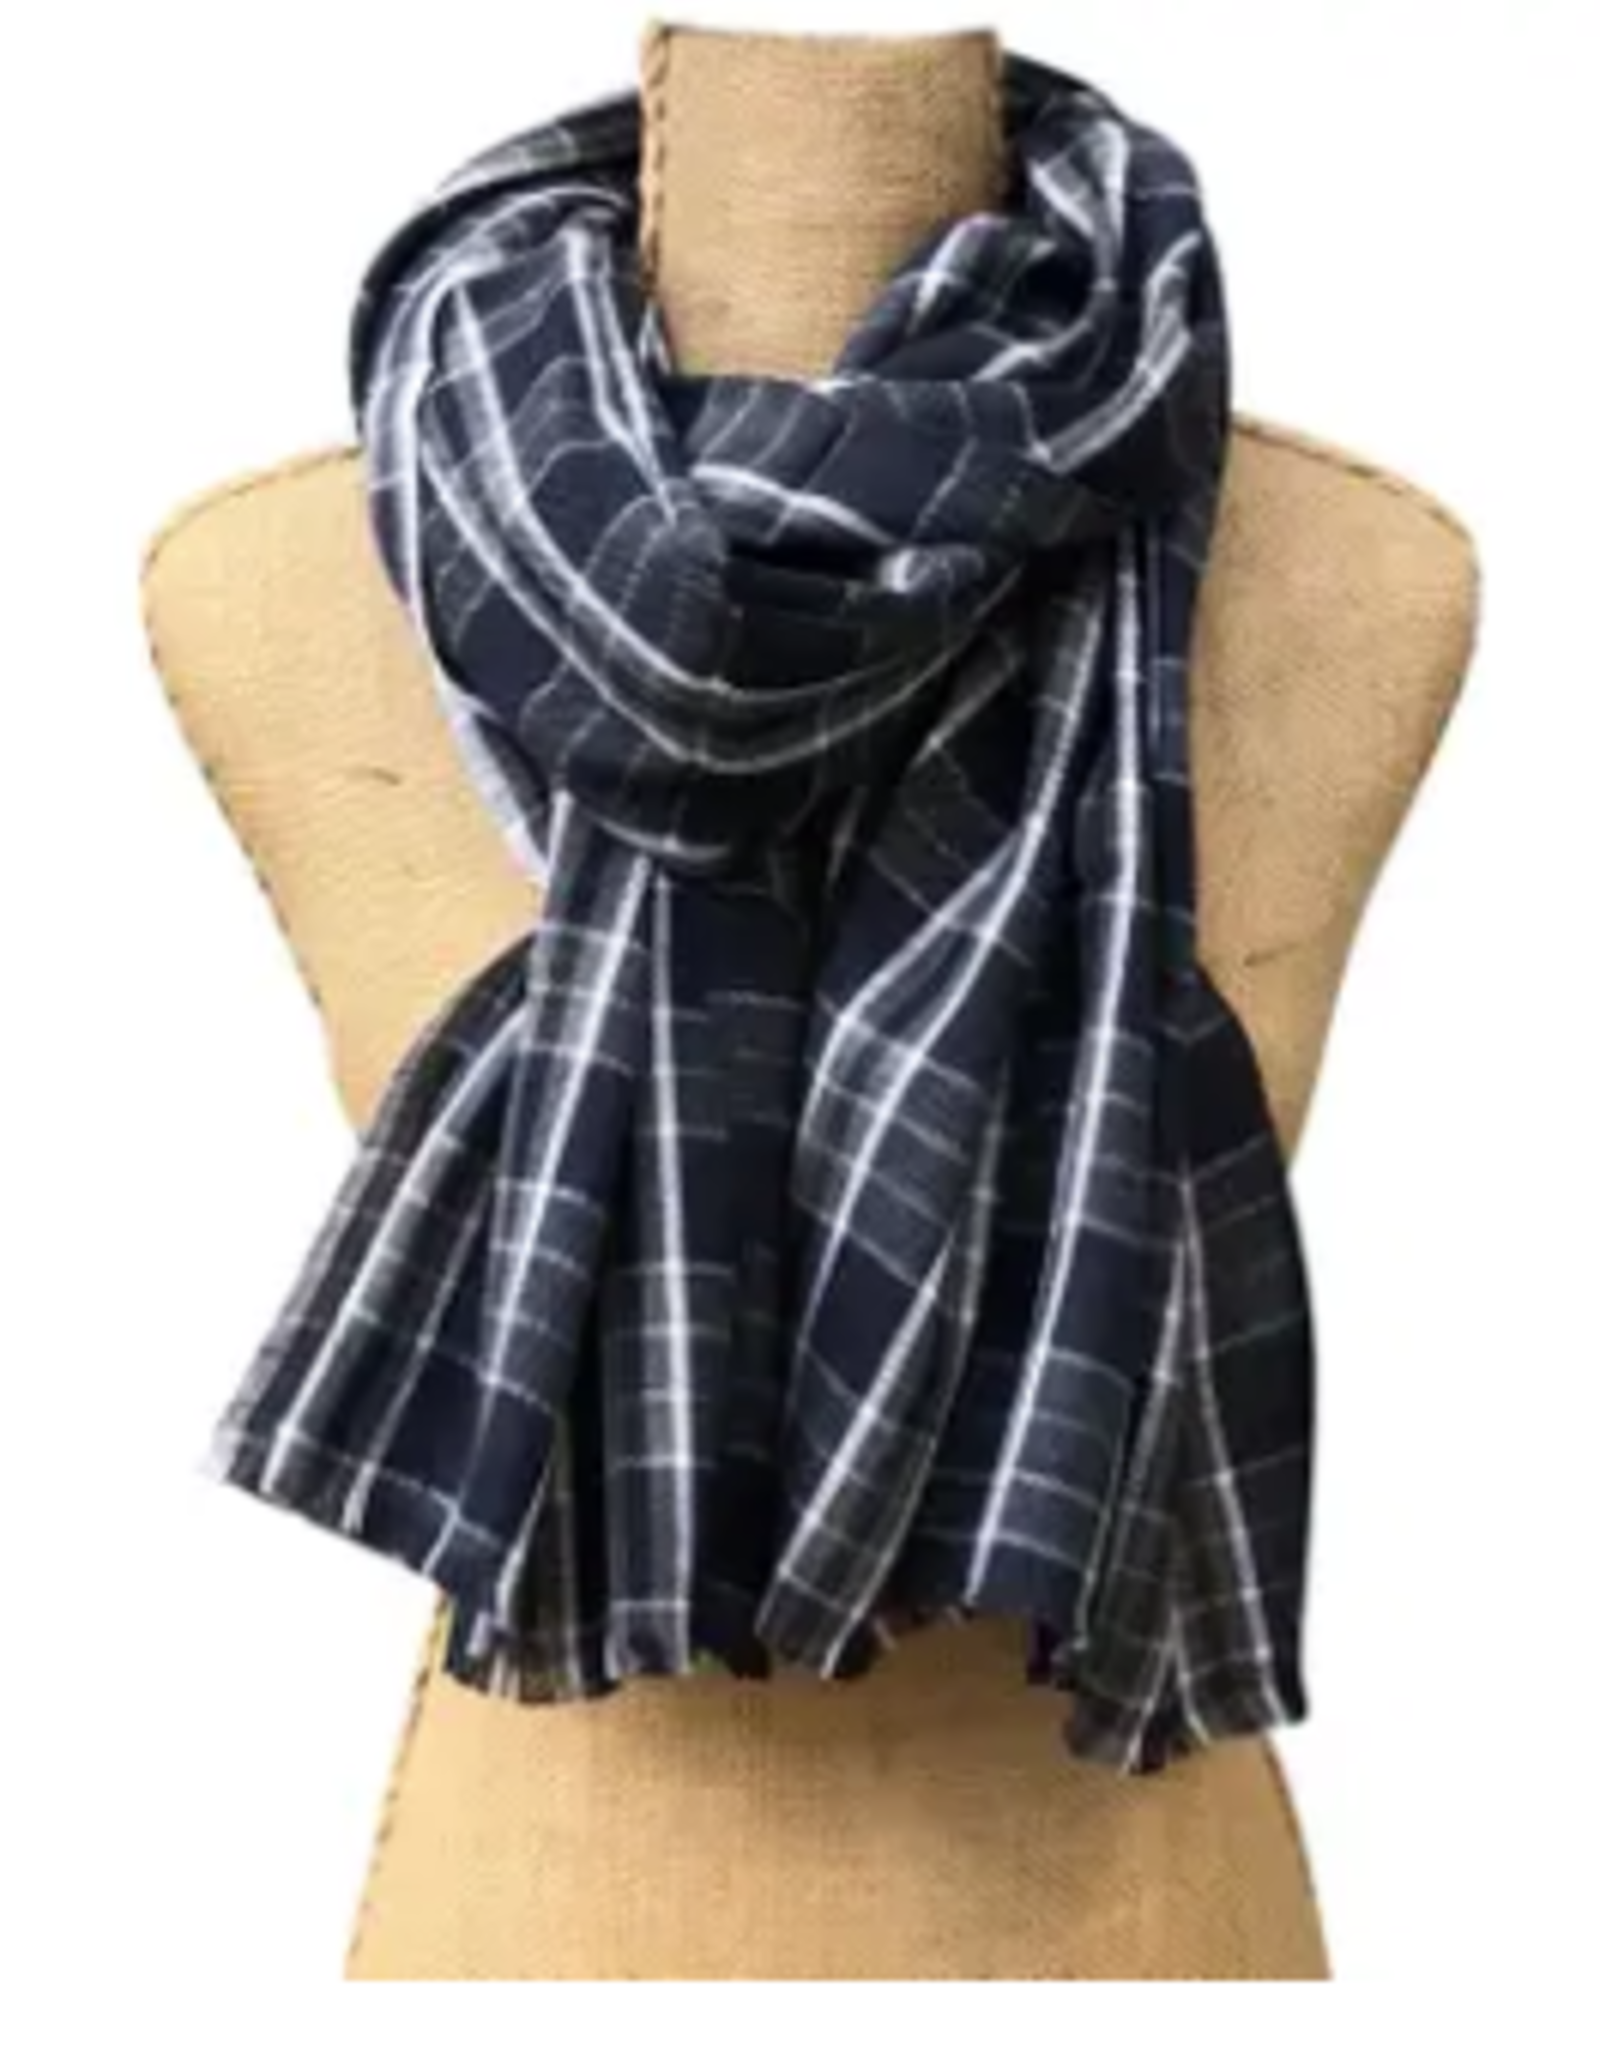 SCARF-COTTON-JORDAN PLAID NAVY/GREY